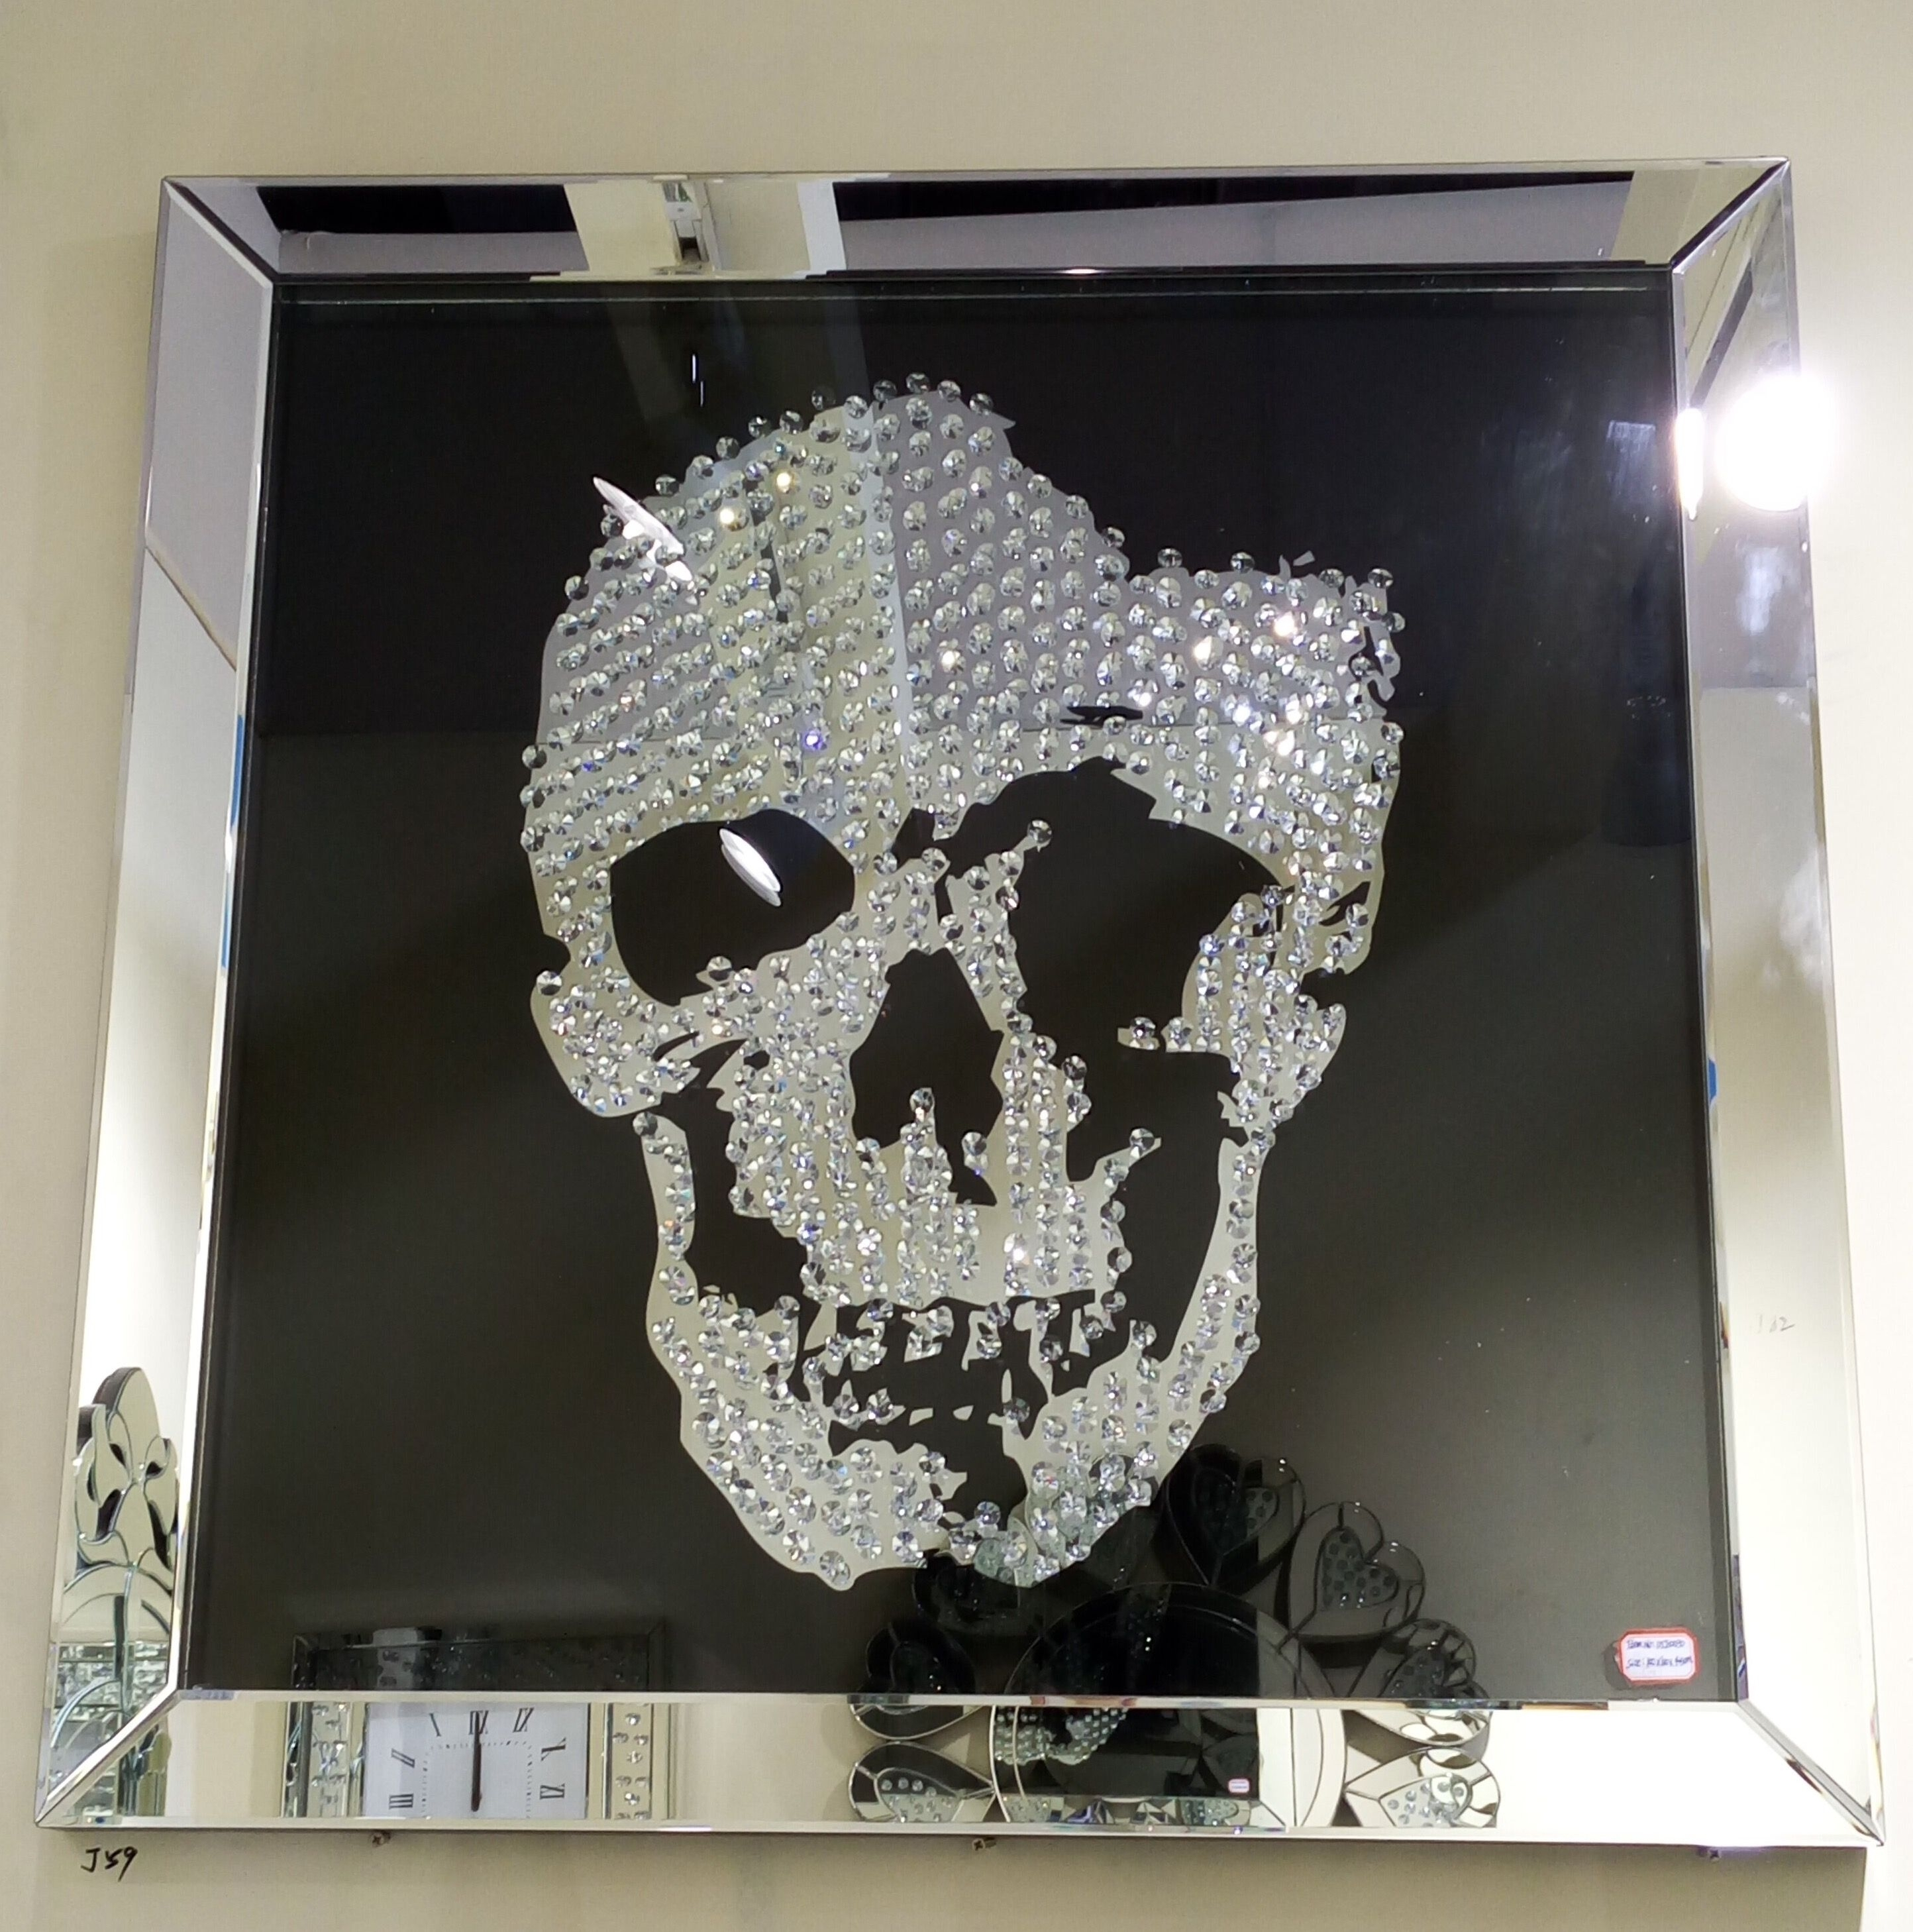 Swarovski Crystal Skull Wall Art With A Silver Mirrored Frame And In Recent Mirrored Wall Art (View 20 of 20)